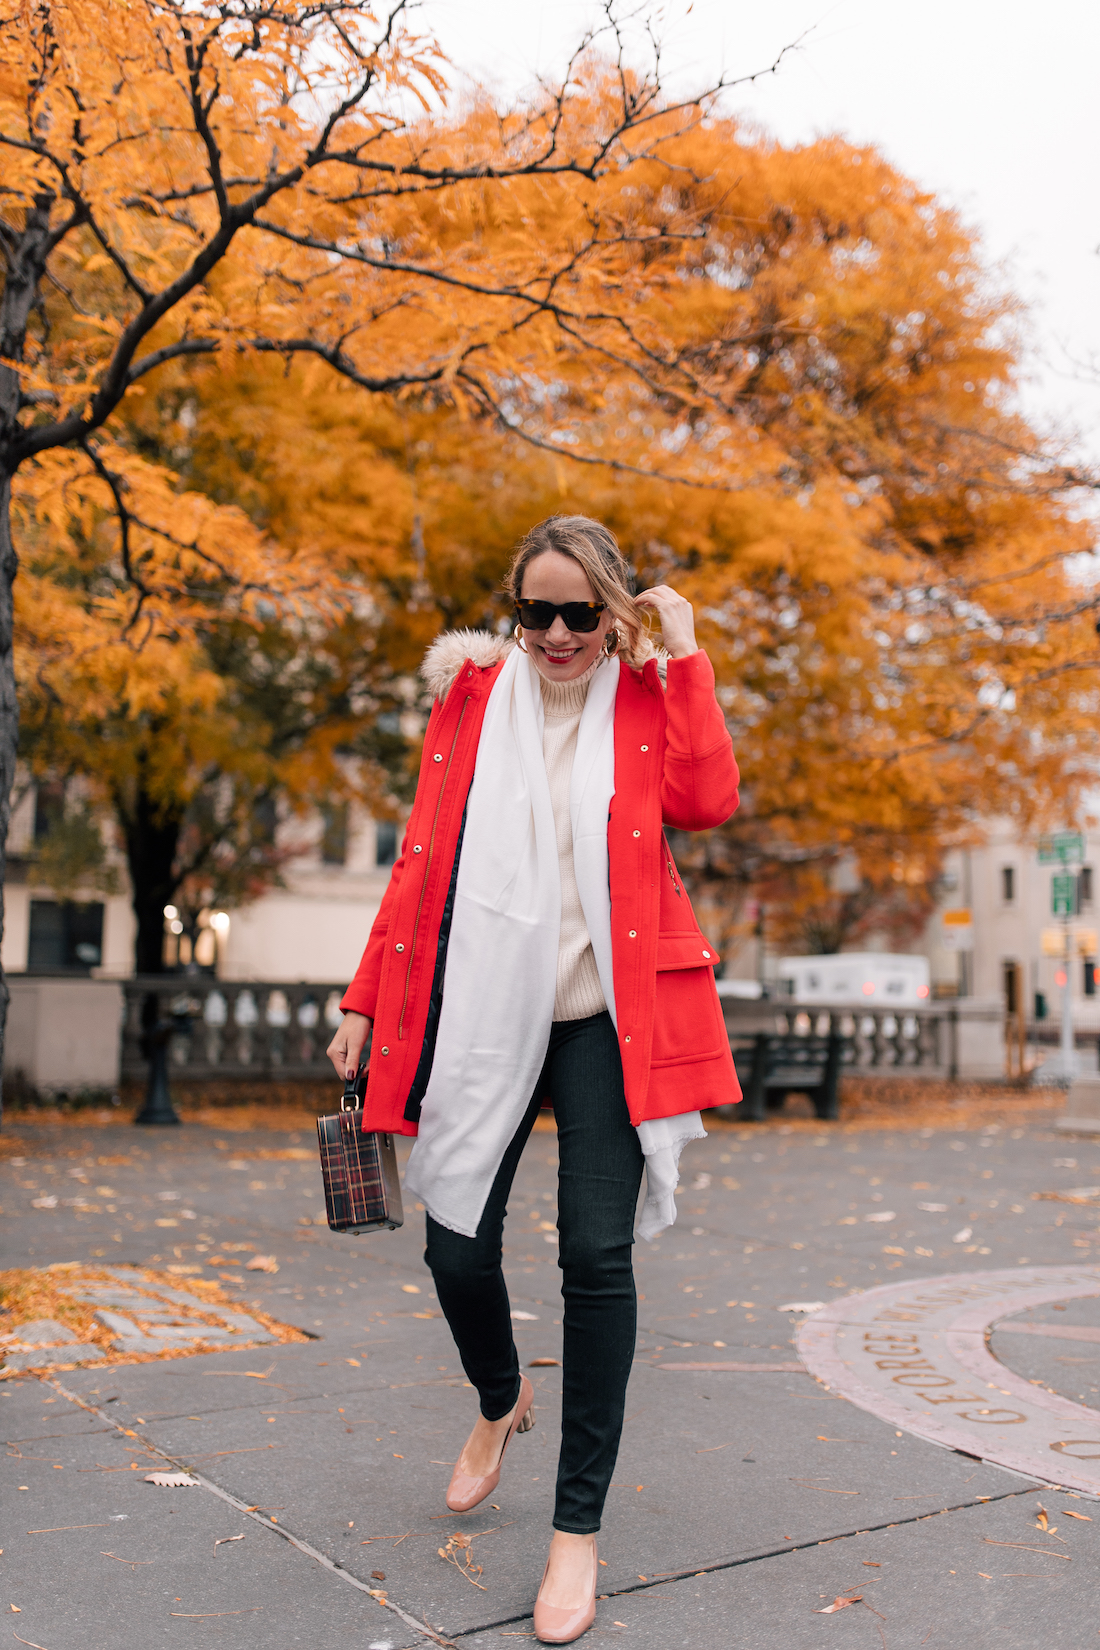 Outfit Details:J.Crew Chateau Parka (also here, finally ON SALE!) // Paige Jeans // Heidi Wynn Cashmere Wrap (20% off with code HOLIDAY20)// Zara Sweater // Ferragamo Heels // Celine Sunglasses // BaubleBar Mini Penelope Hoop Earrings(currently on sale!) // Patricia Nash Bag